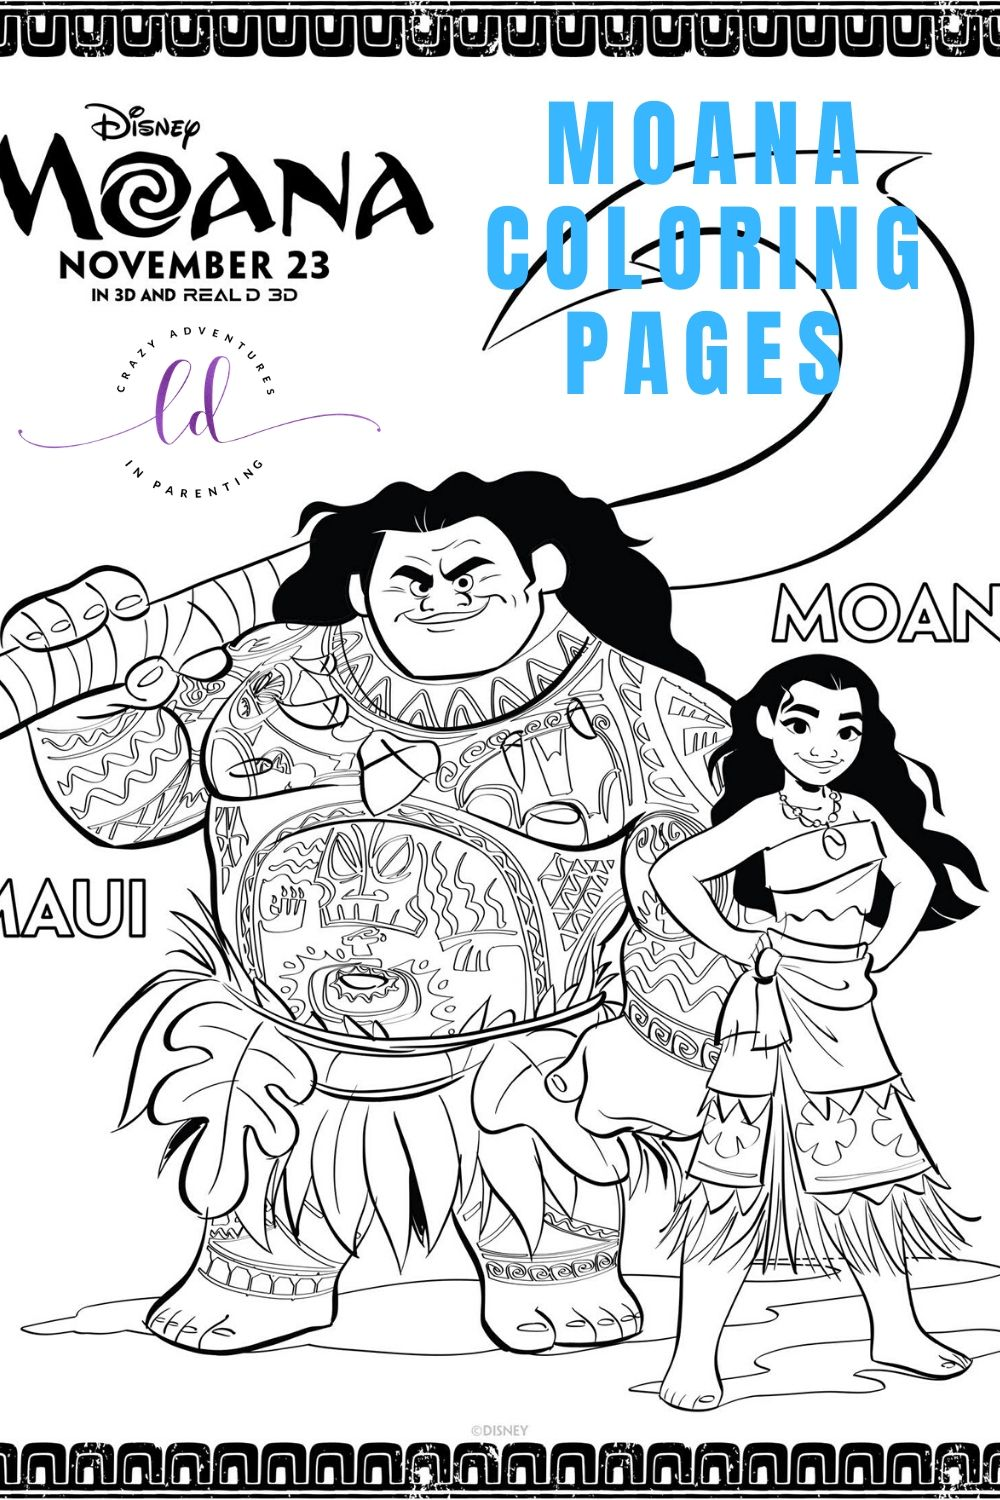 Moana Coloring Pages And Activity Sheets Moana Coloring Moana Coloring Pages Free Disney Coloring Pages